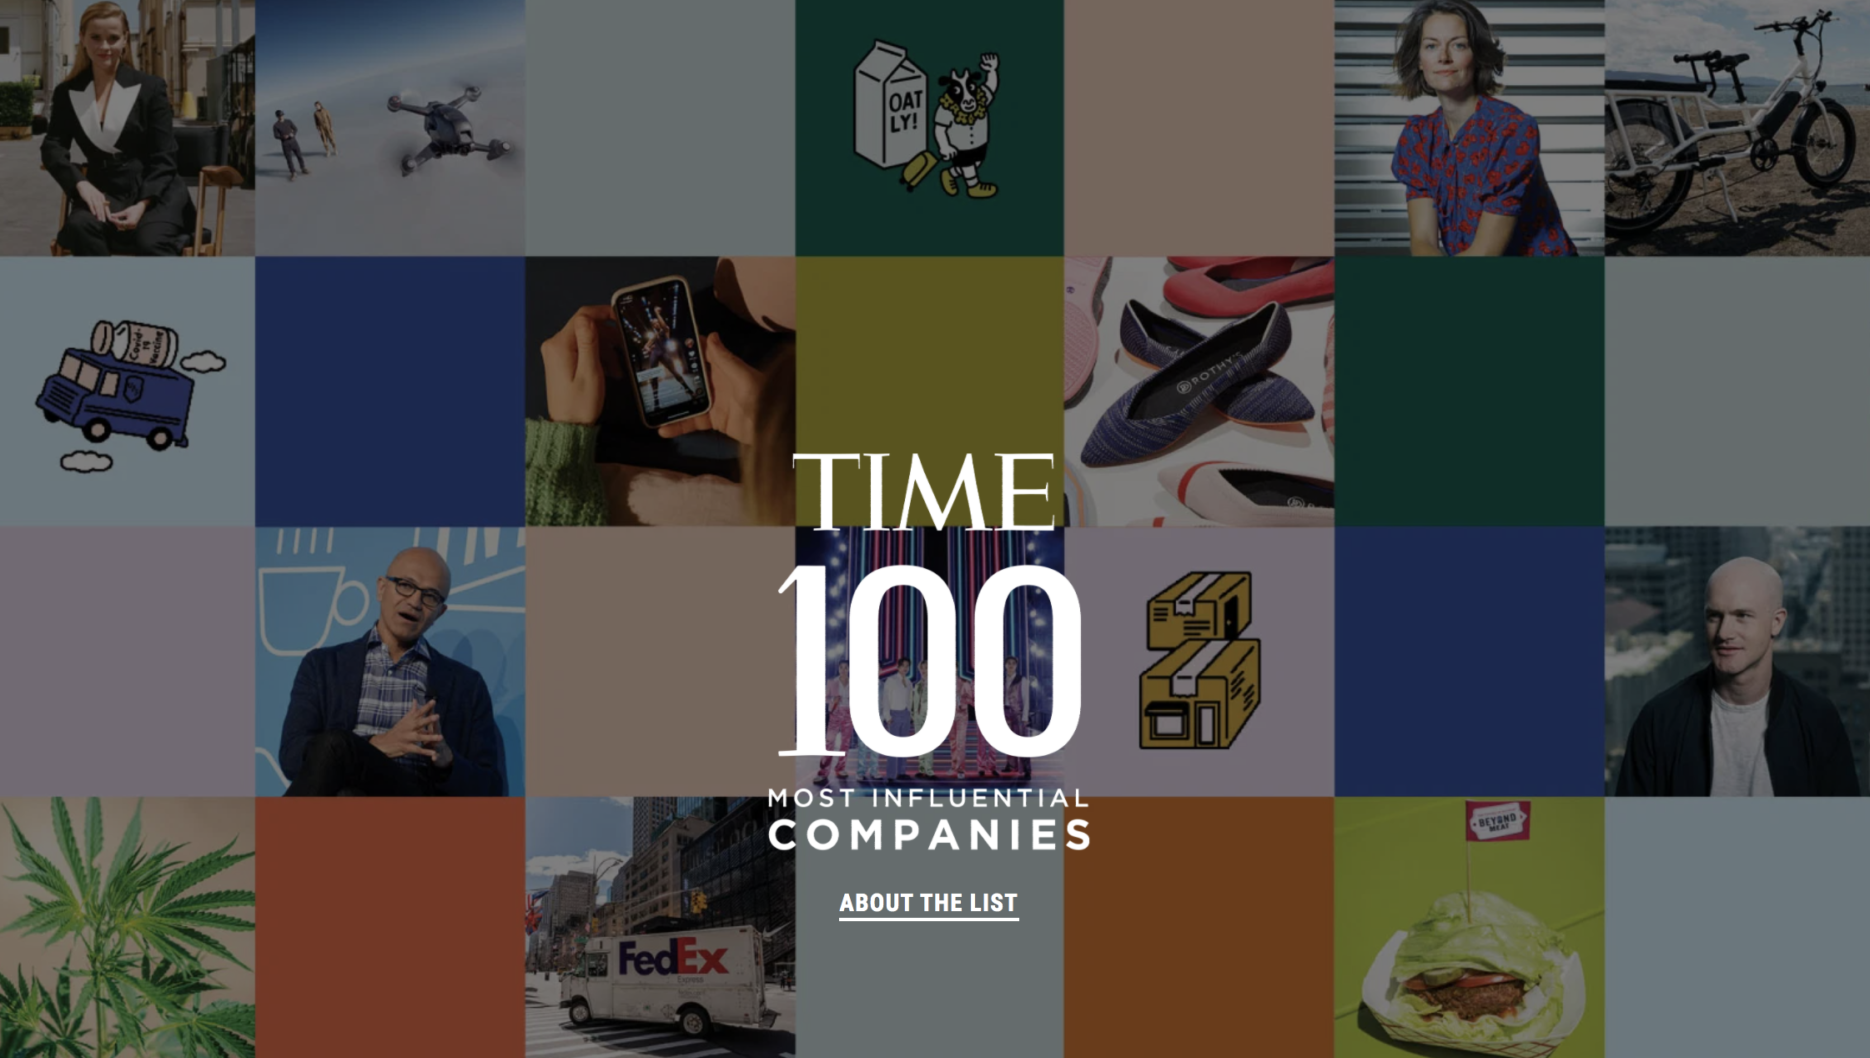 Time's 100 most influential companies. Credit: Time